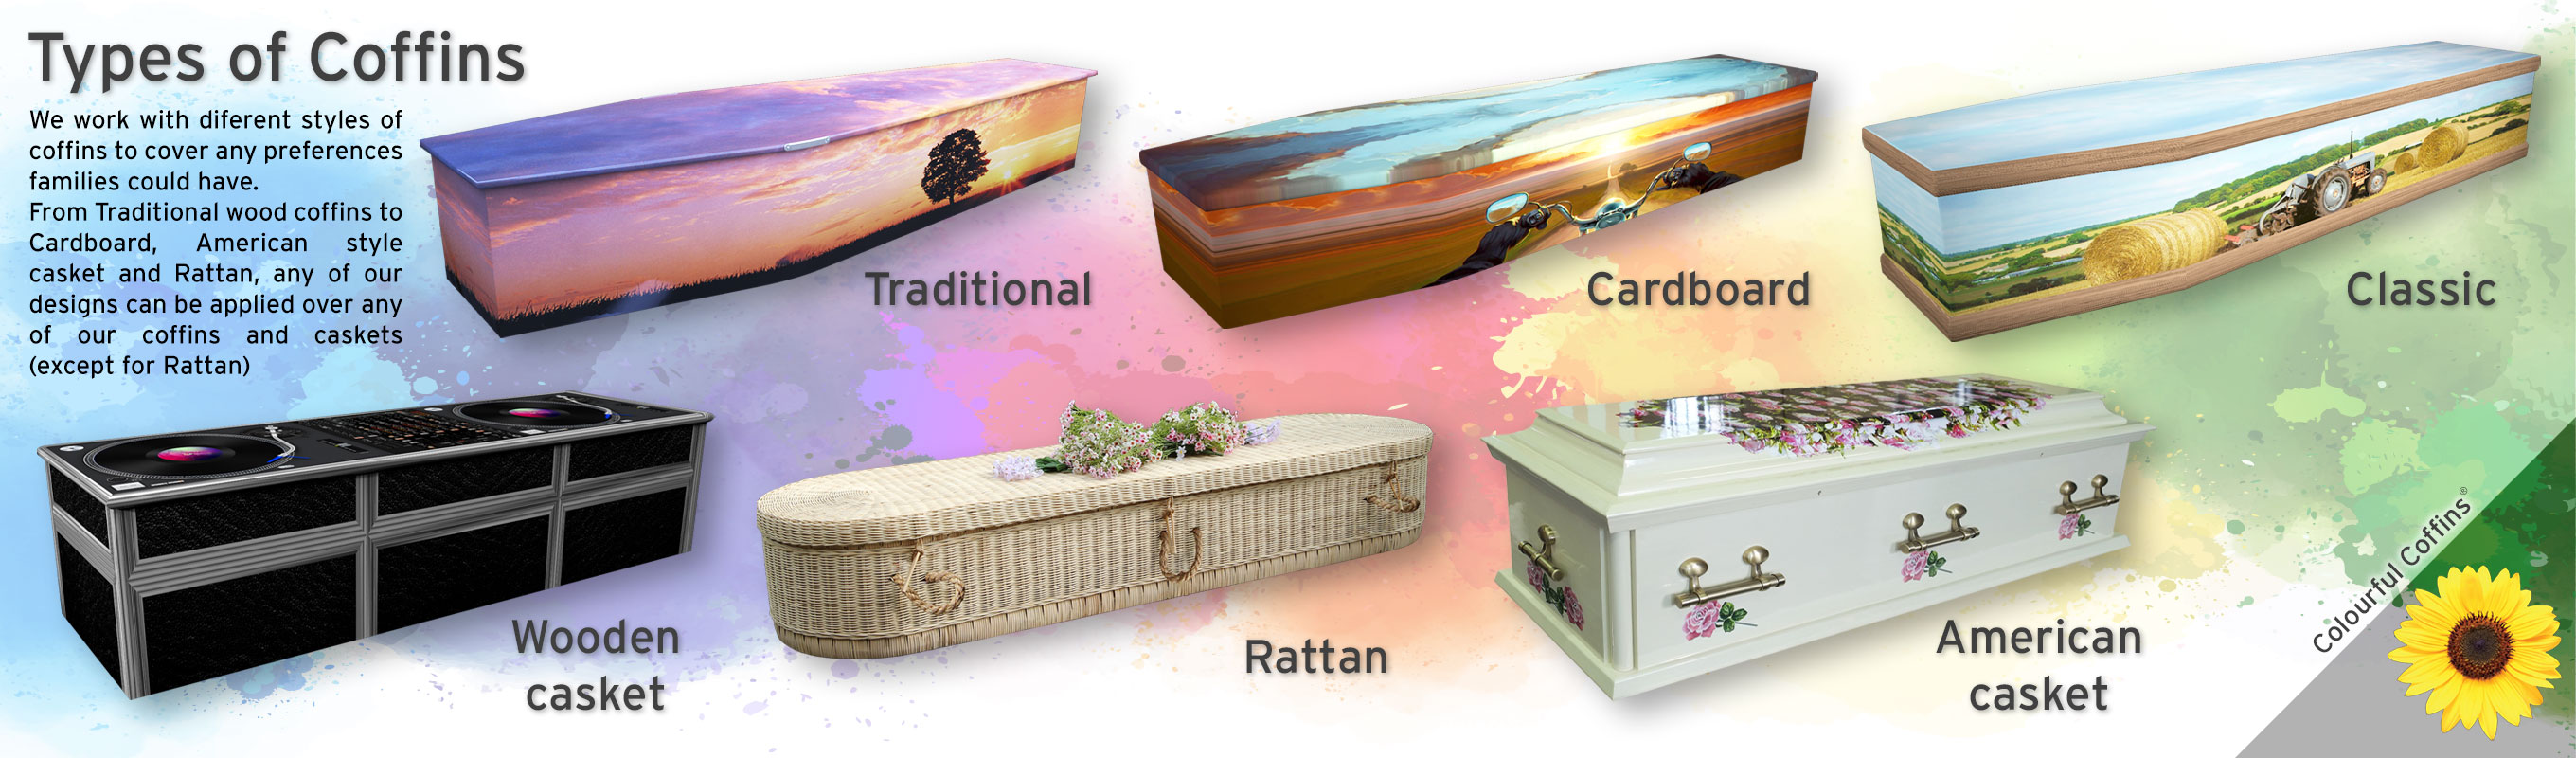 Types of Coffin